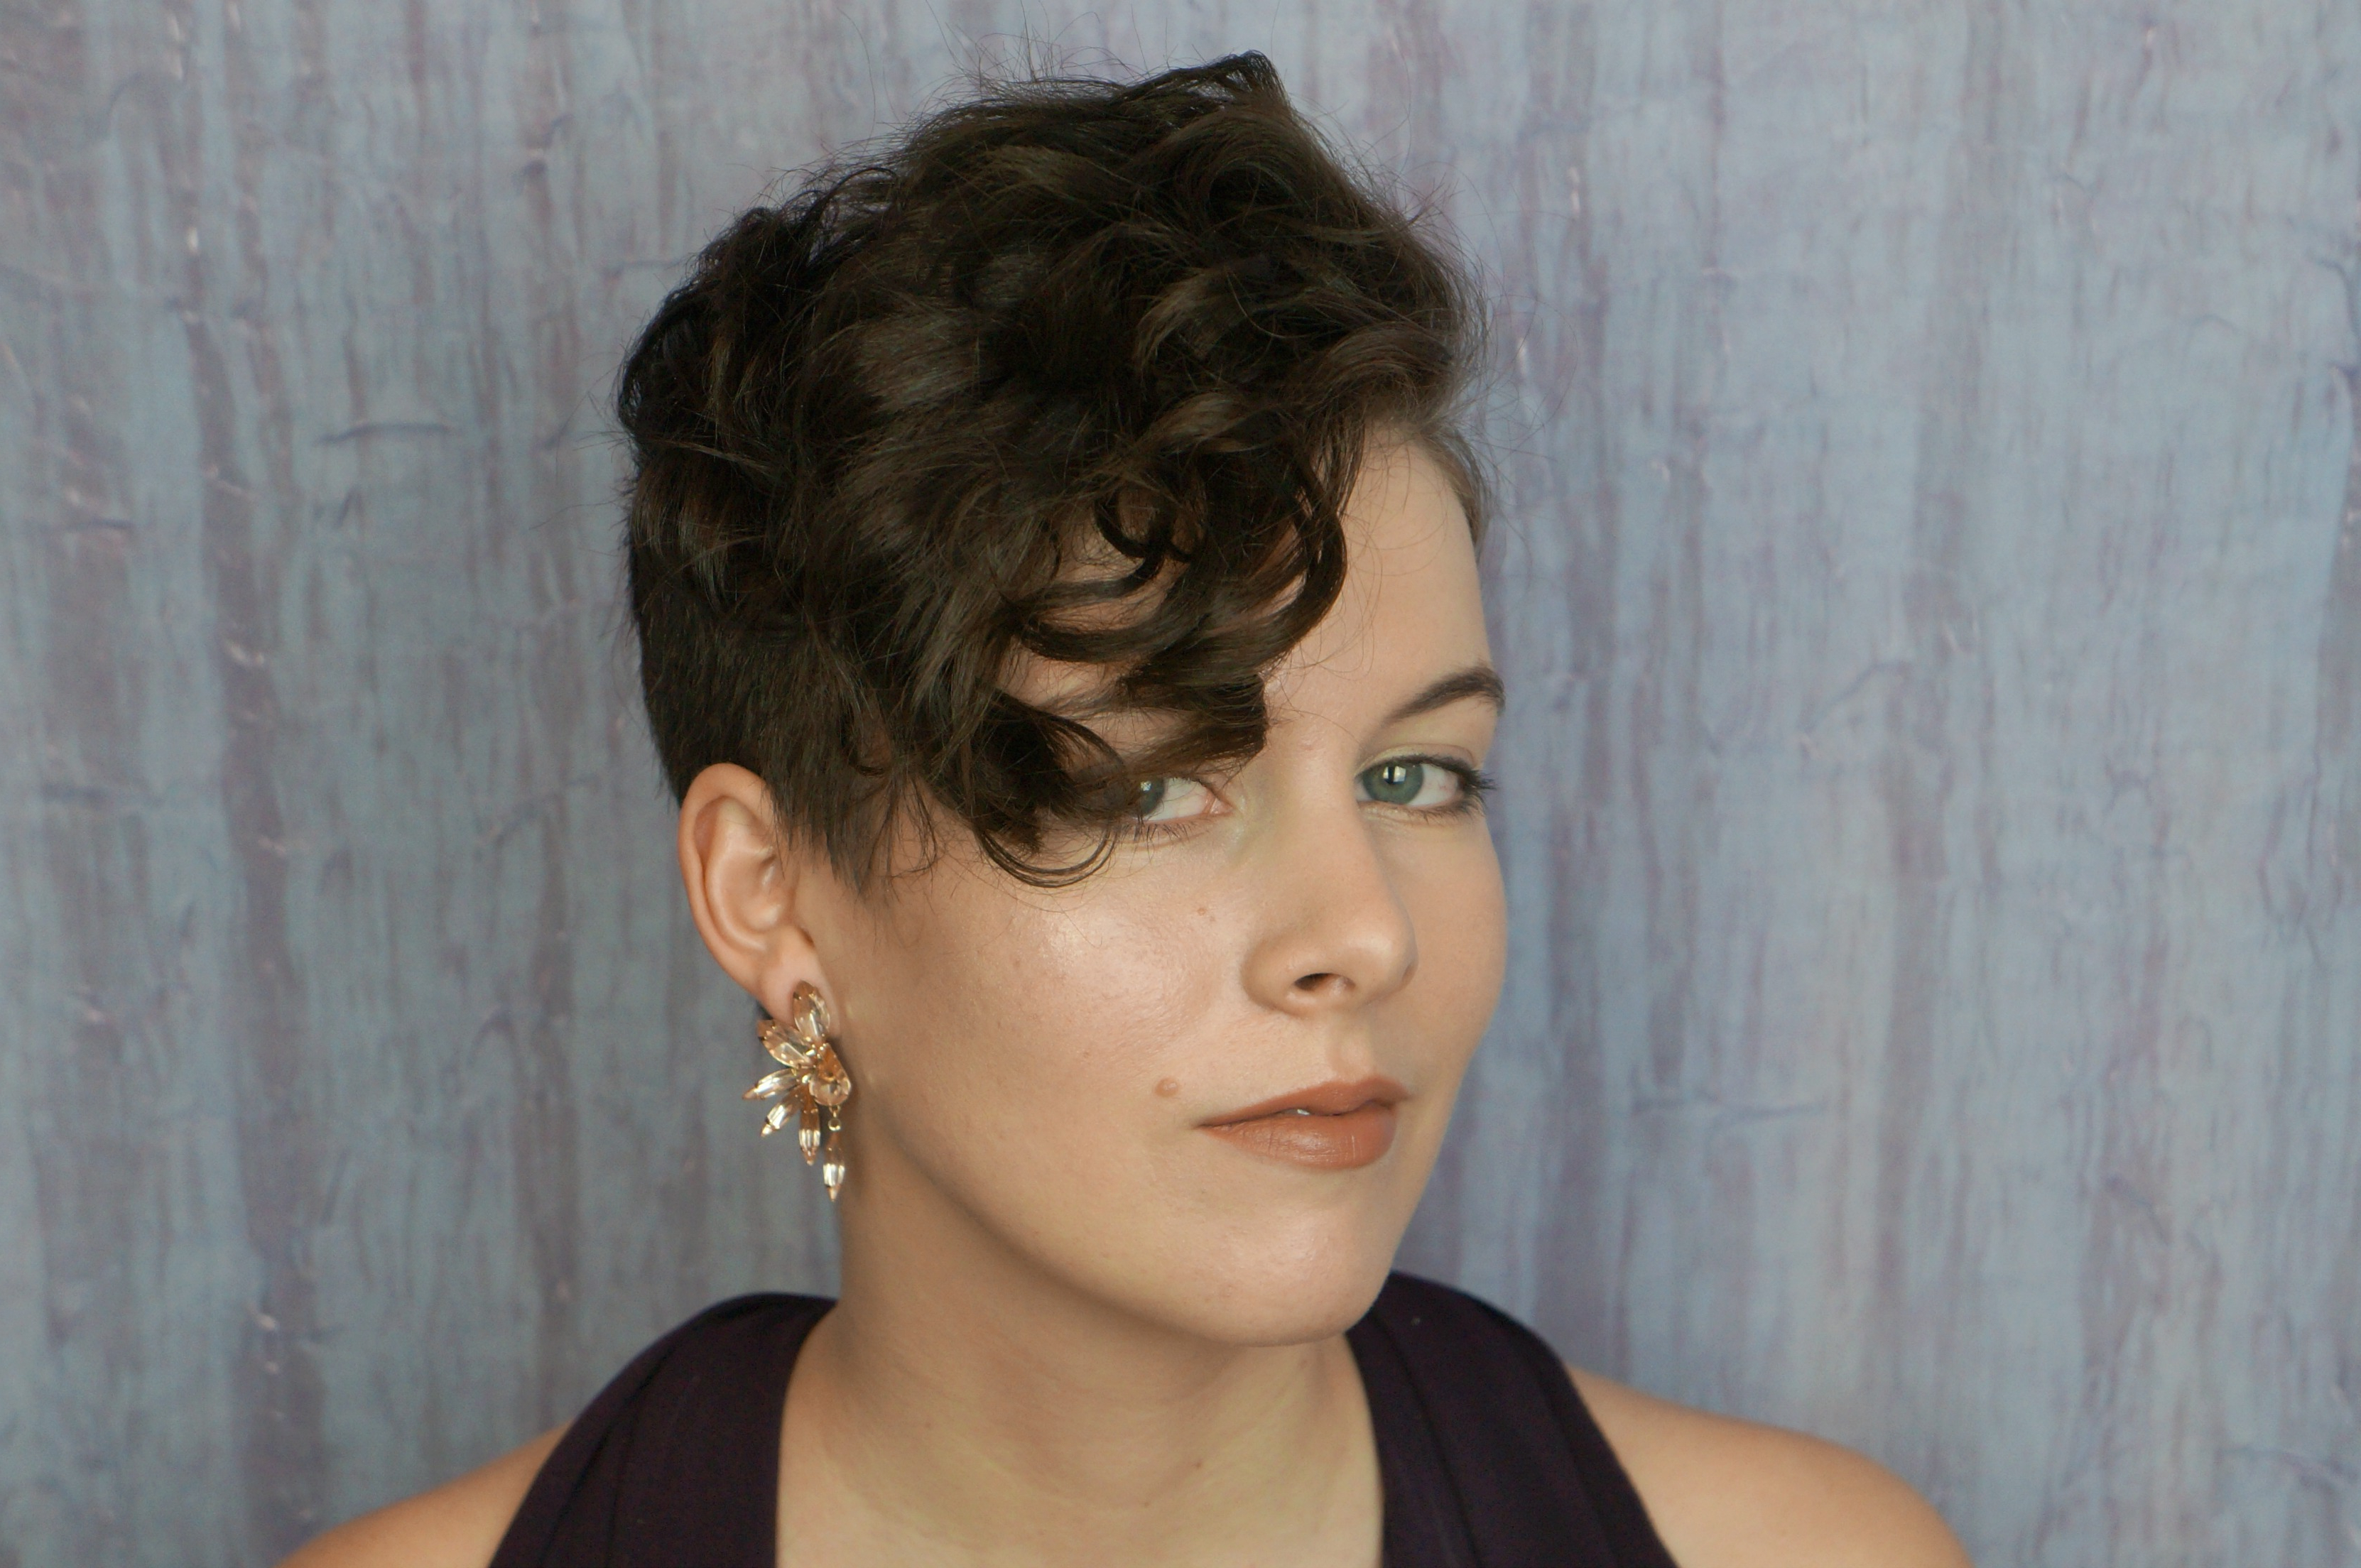 4 Short Hairstyles For Prom That Prove Pixie Cuts Can Be Extremely Glam Inside Graduation Short Hairstyles (View 19 of 25)